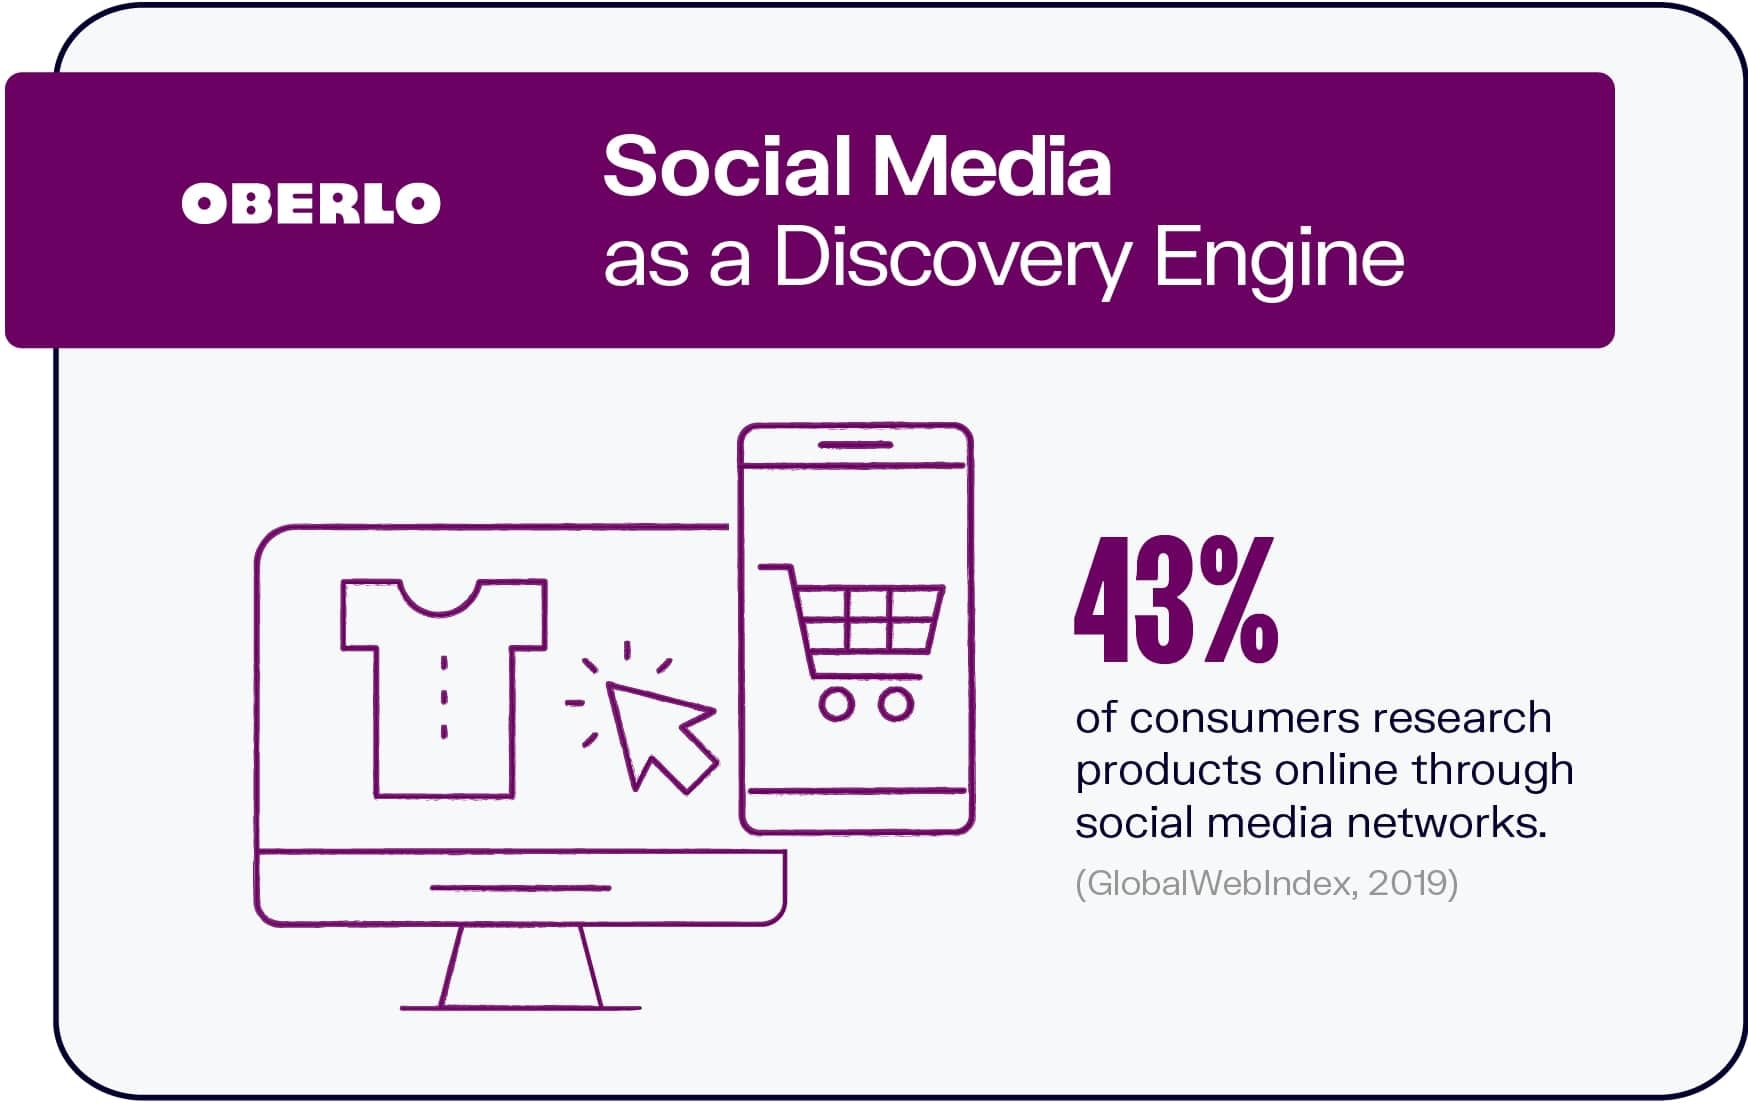 Social Media as a Discovery Engine